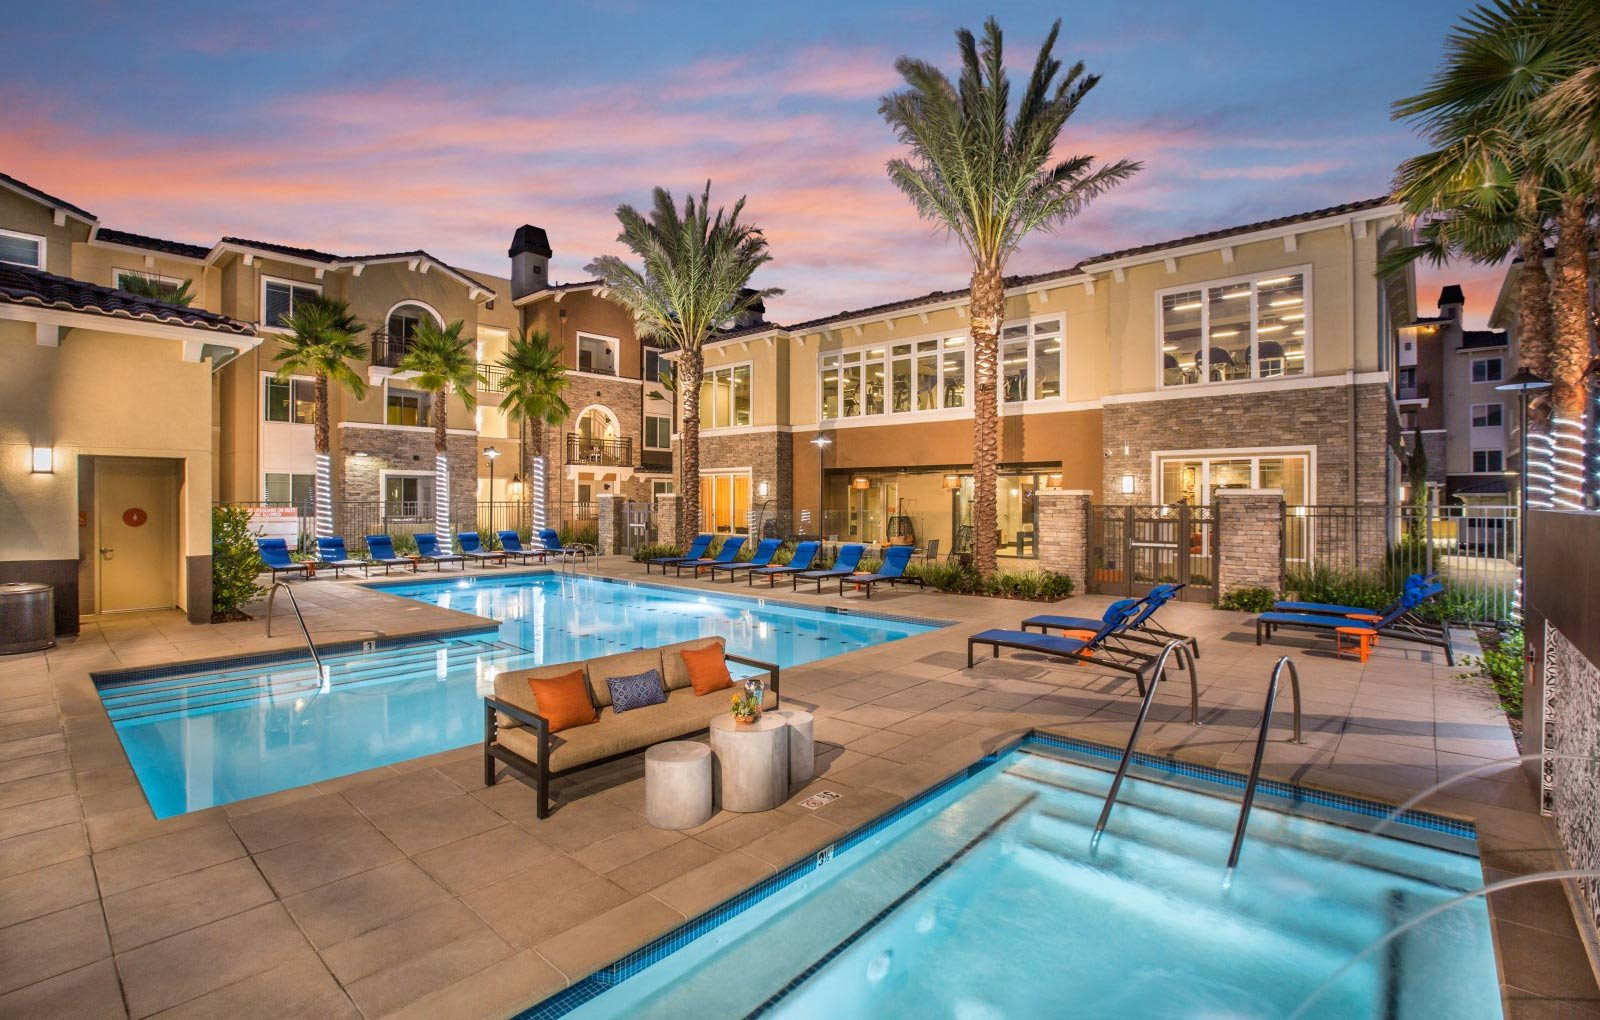 pool and spa with resort style cabanas at Valentia Apartments in La Habra, CA